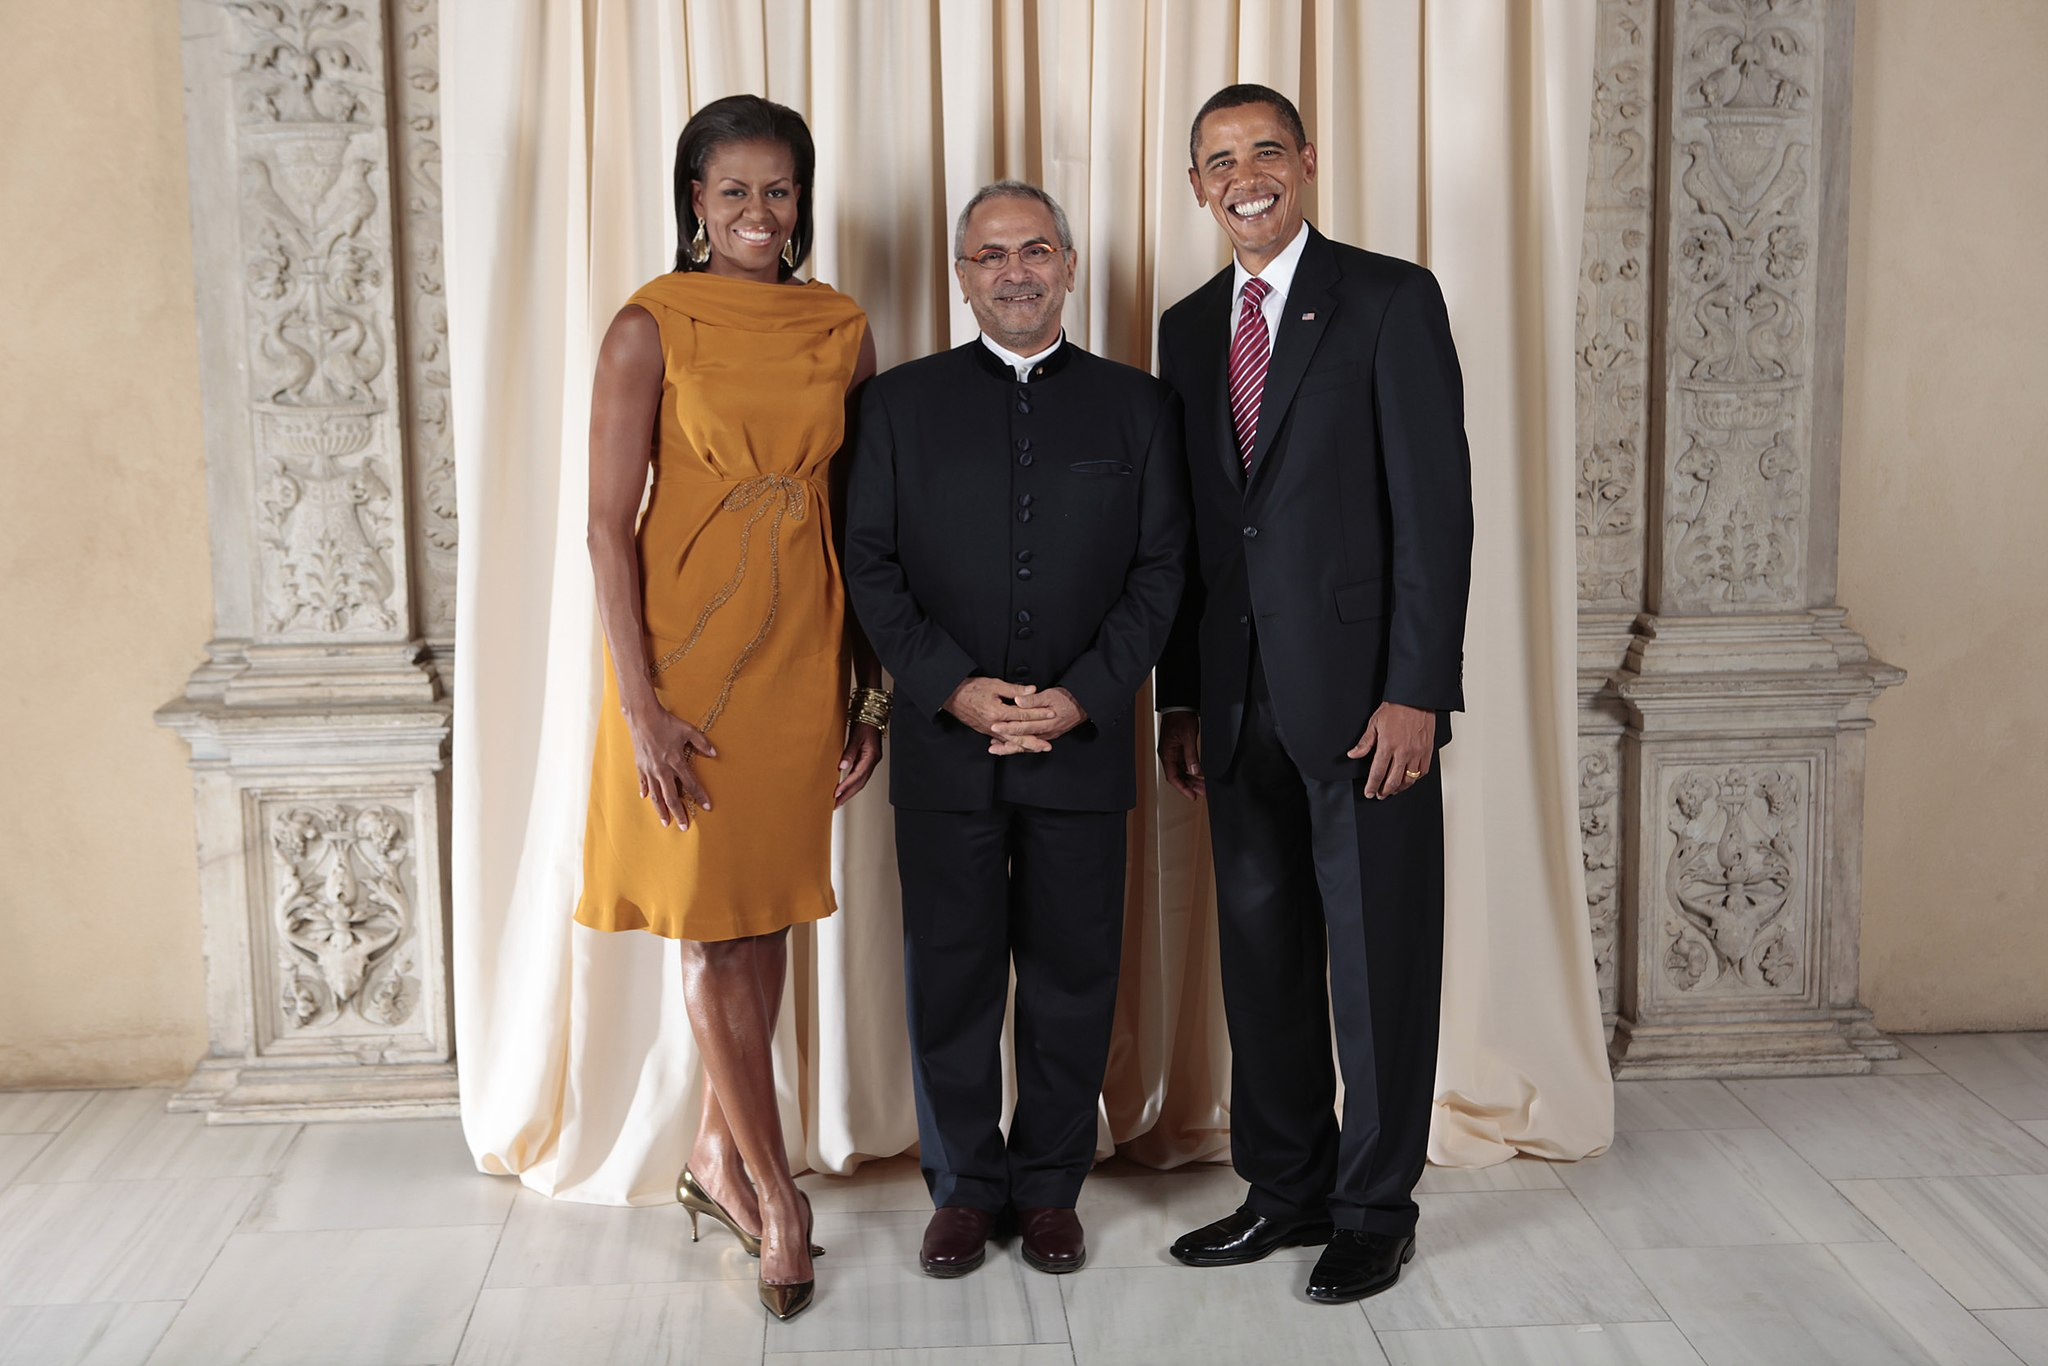 Jose Ramos-Horta poses with President Barack Obama and First Lady Michelle Obama pose for a photo during a reception at the Metropolitan Museum in New York, Sept. 23 2009    LAWRENCE JACKSON